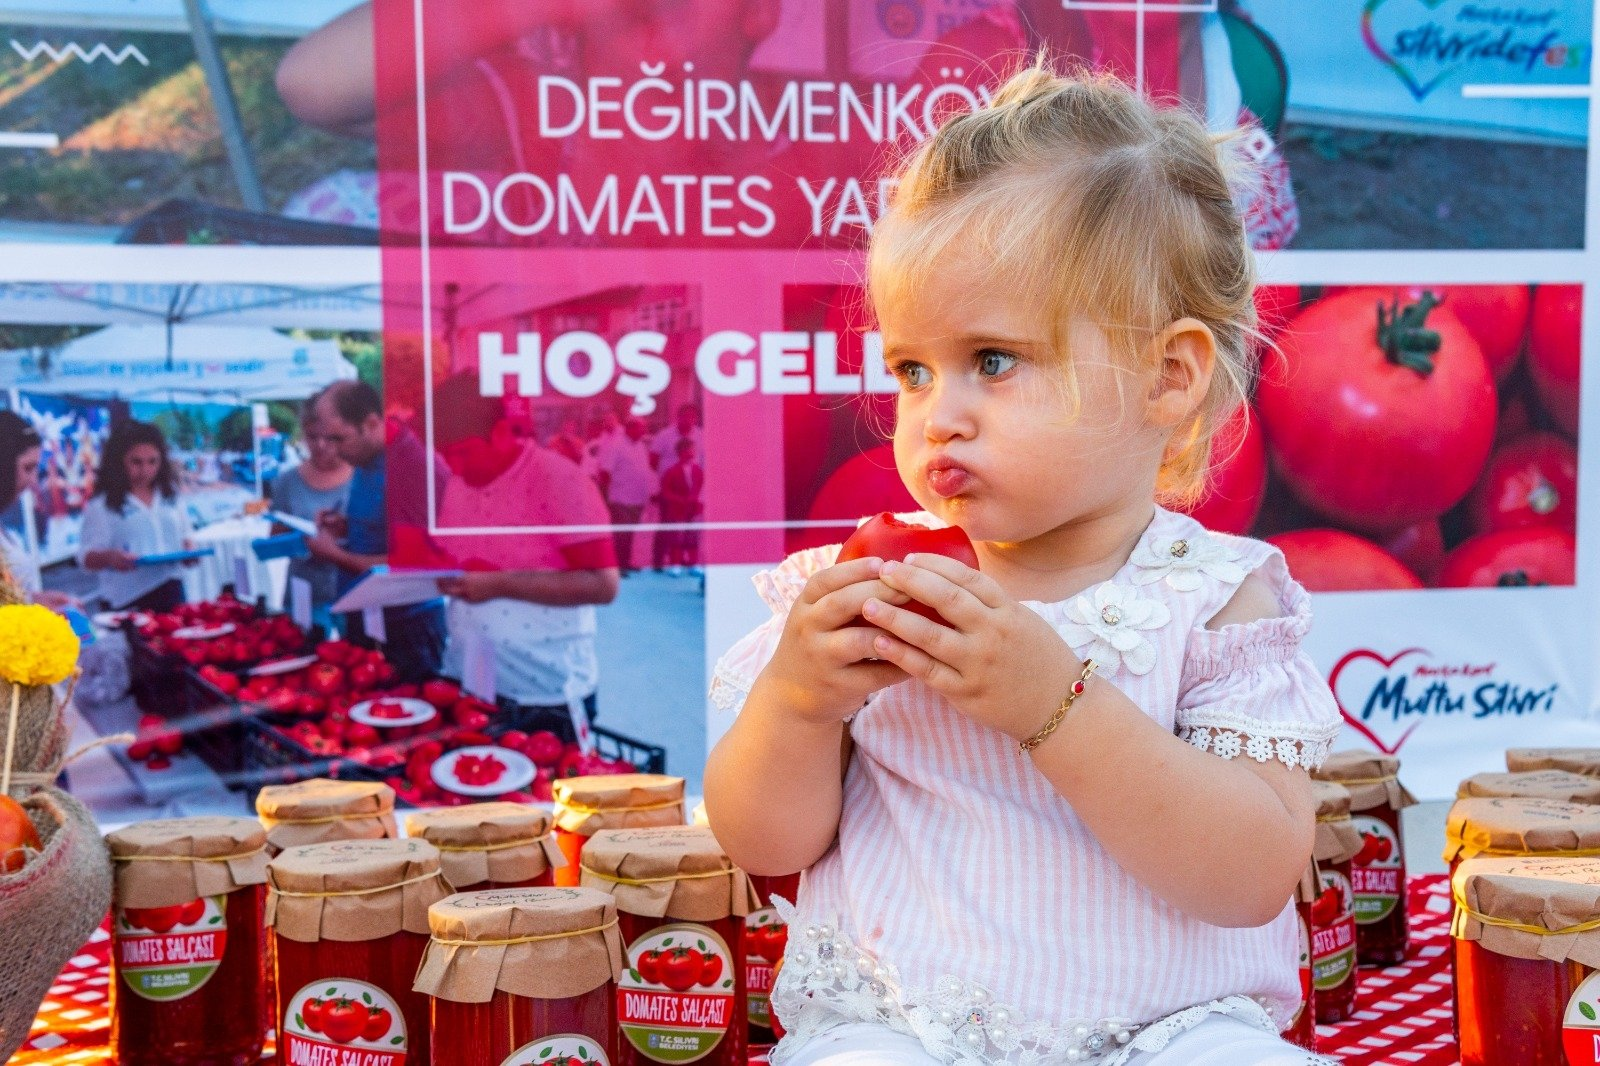 A young girl enjoys a freshly picked tomato in Silivri, Istanbul, Aug. 24, 2020. (DHA Photo)